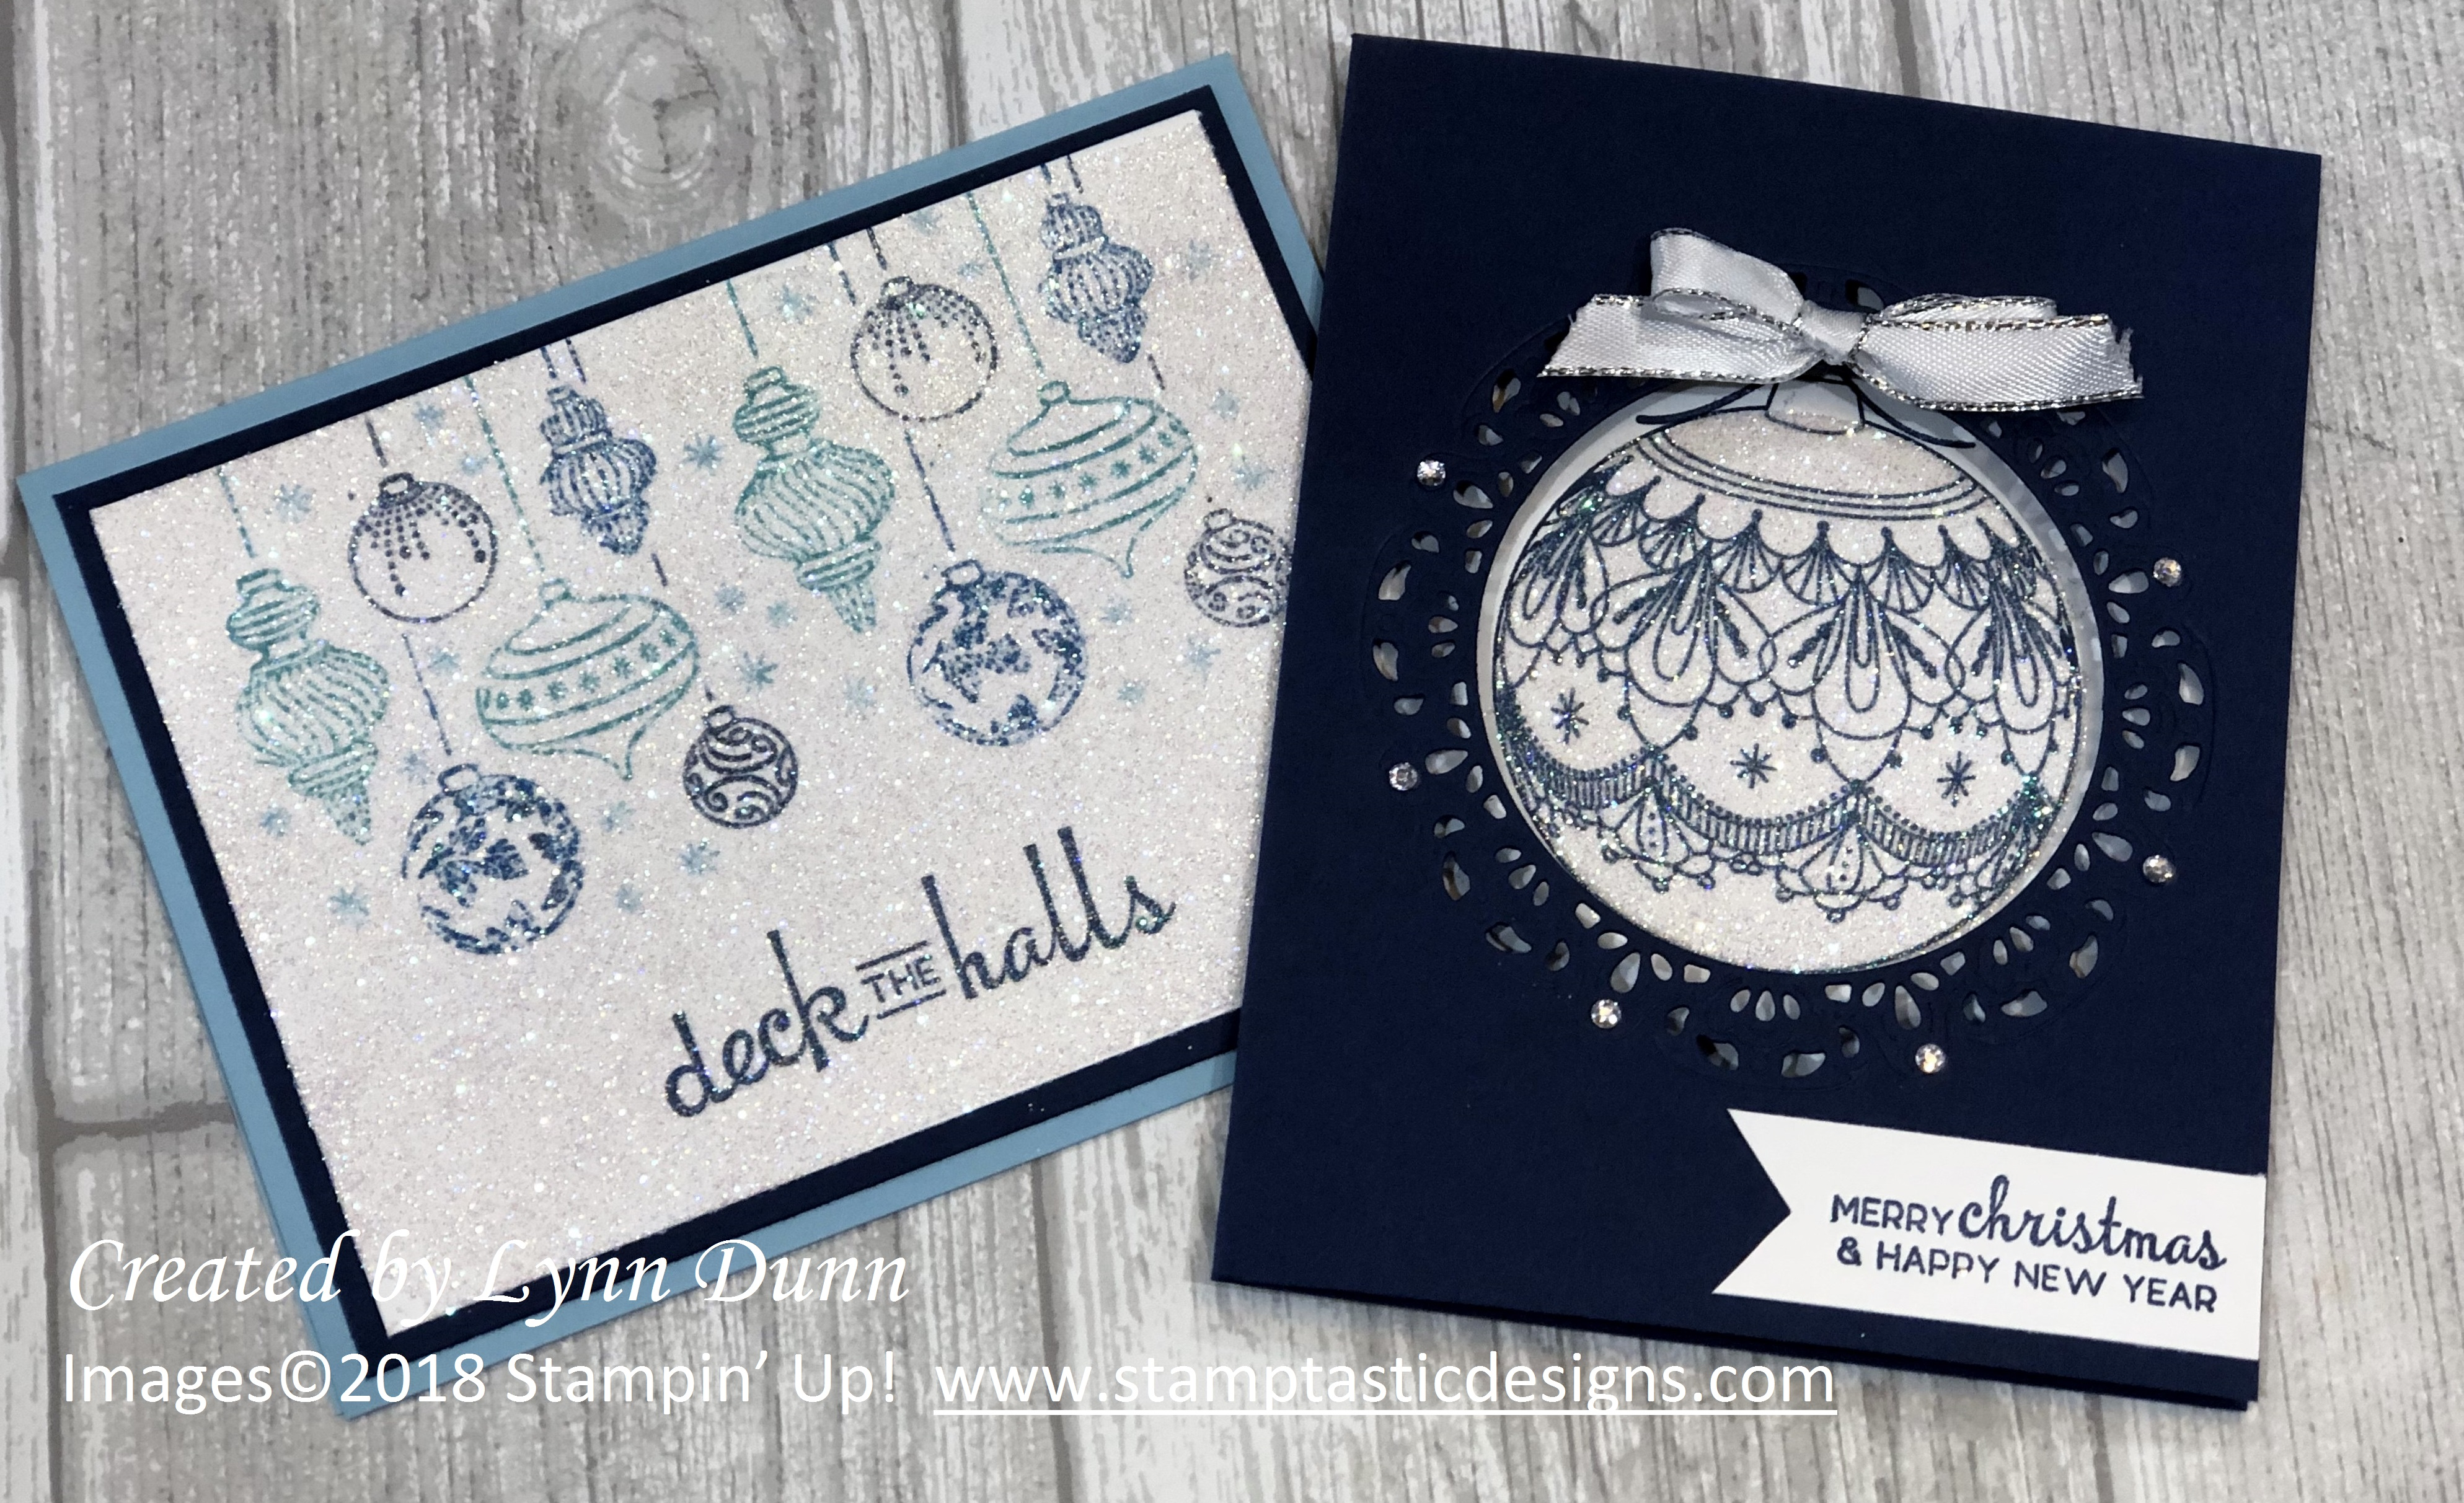 Christmas Greeting Card Ideas.Beautiful Baubles Christmas Card Ideas Lynn Dunn